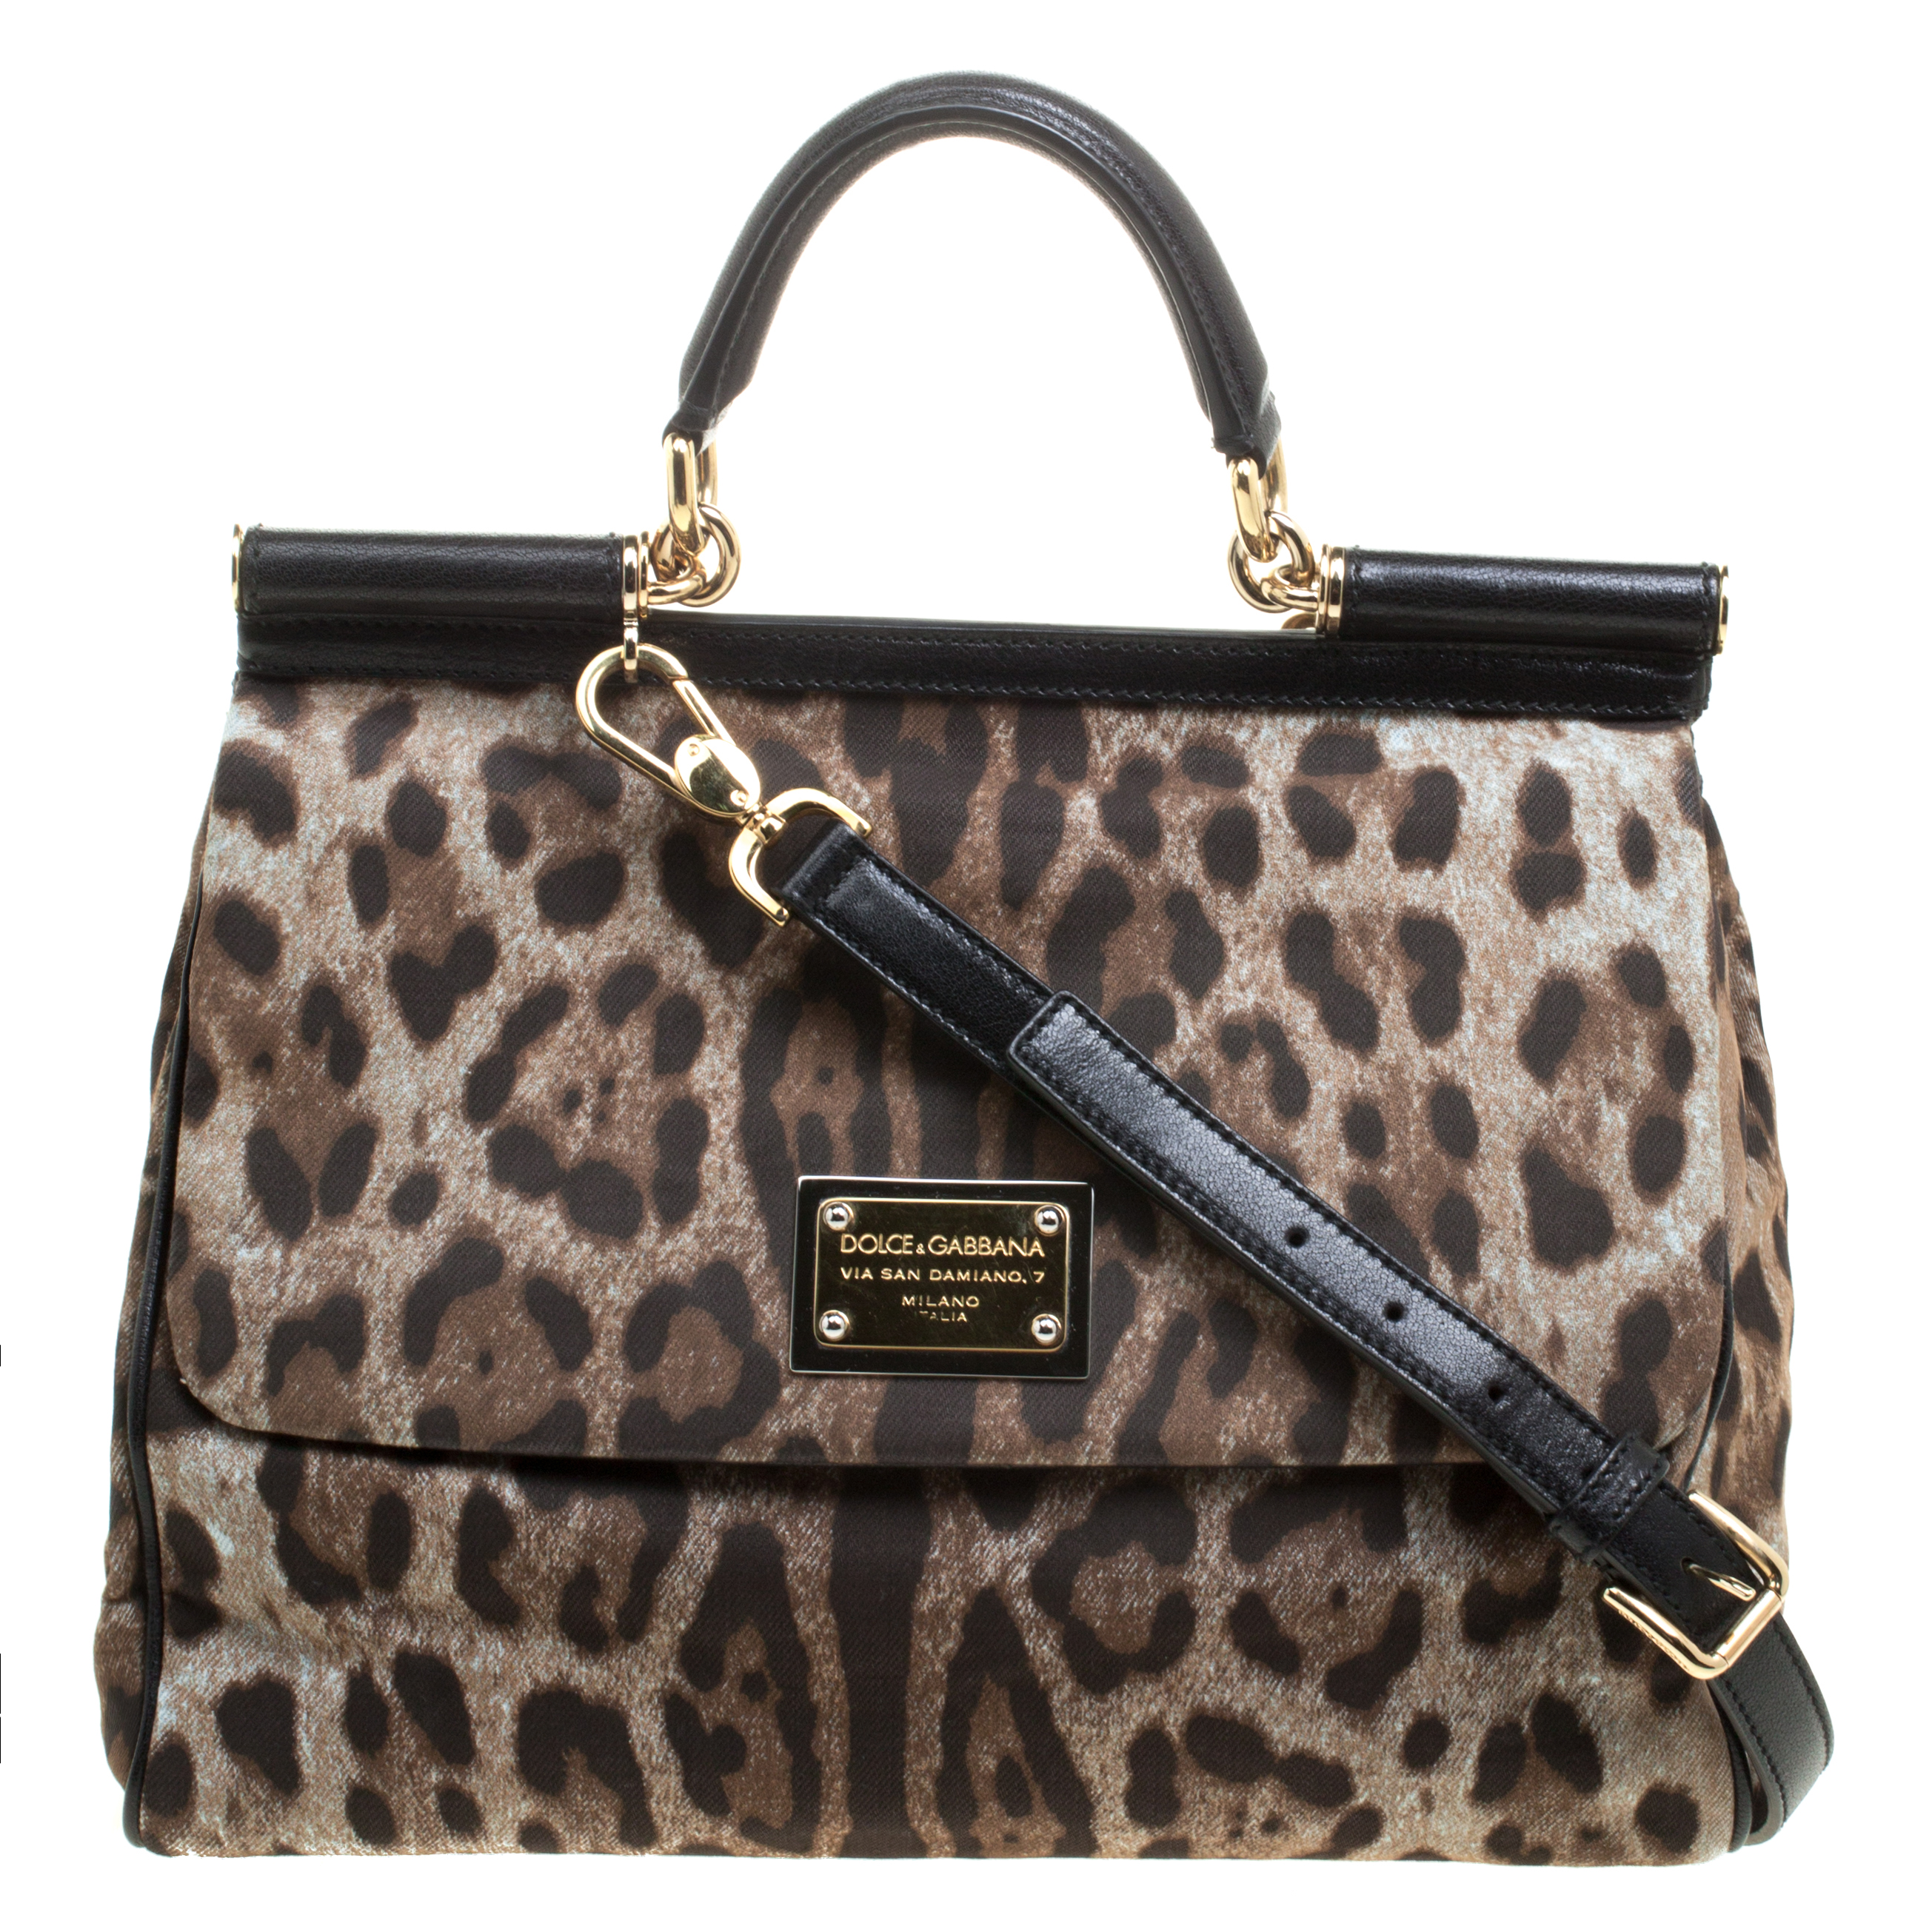 ... Dolce and Gabbana Leopard Print Fabric Medium Miss Sicily Top Handle Bag.  nextprev. prevnext 99e9e99e144ce